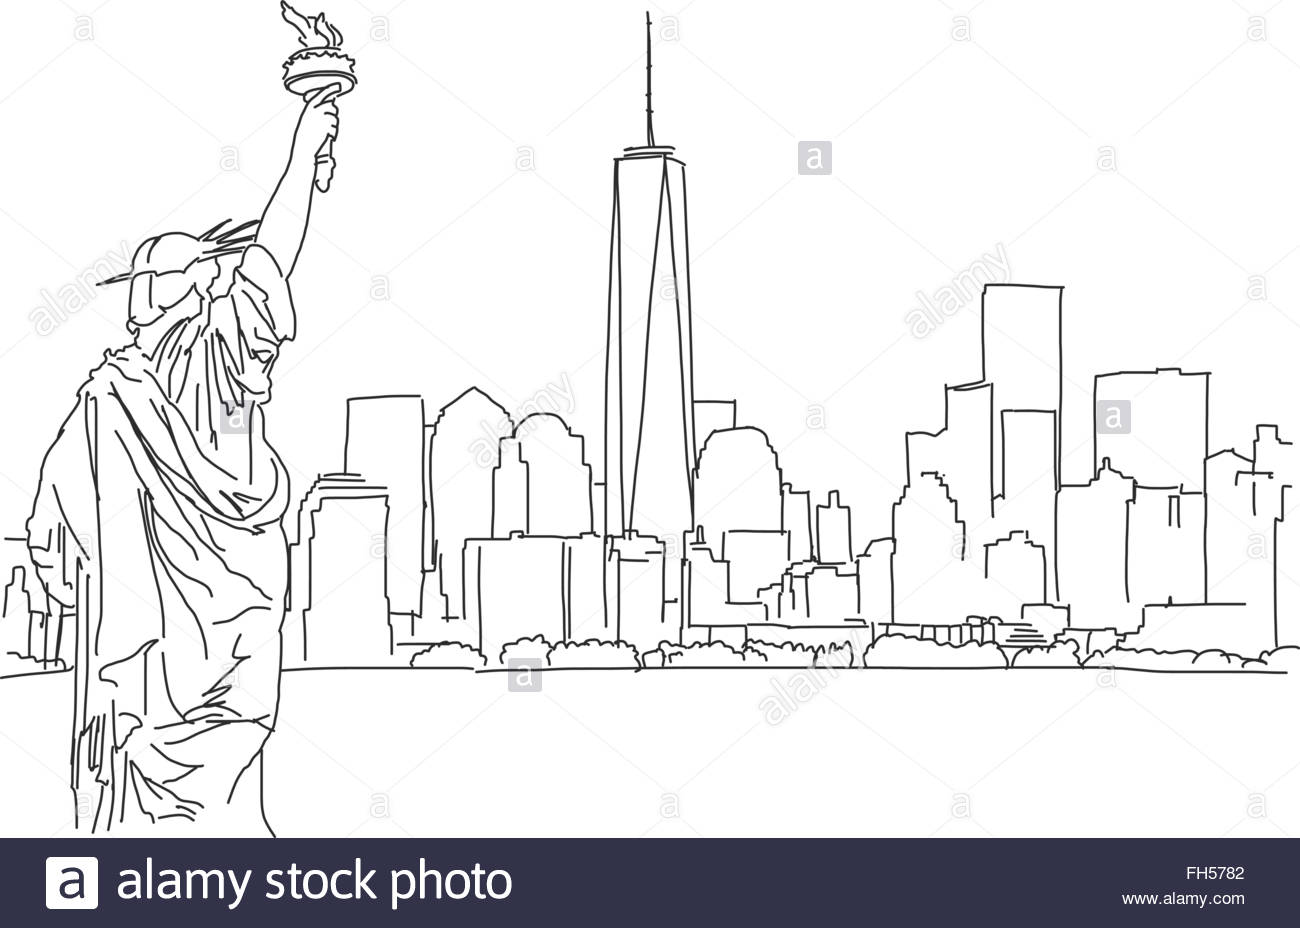 1300x928 Free Hand Sketch Of New York City Skyline. Vector Outline Scribble